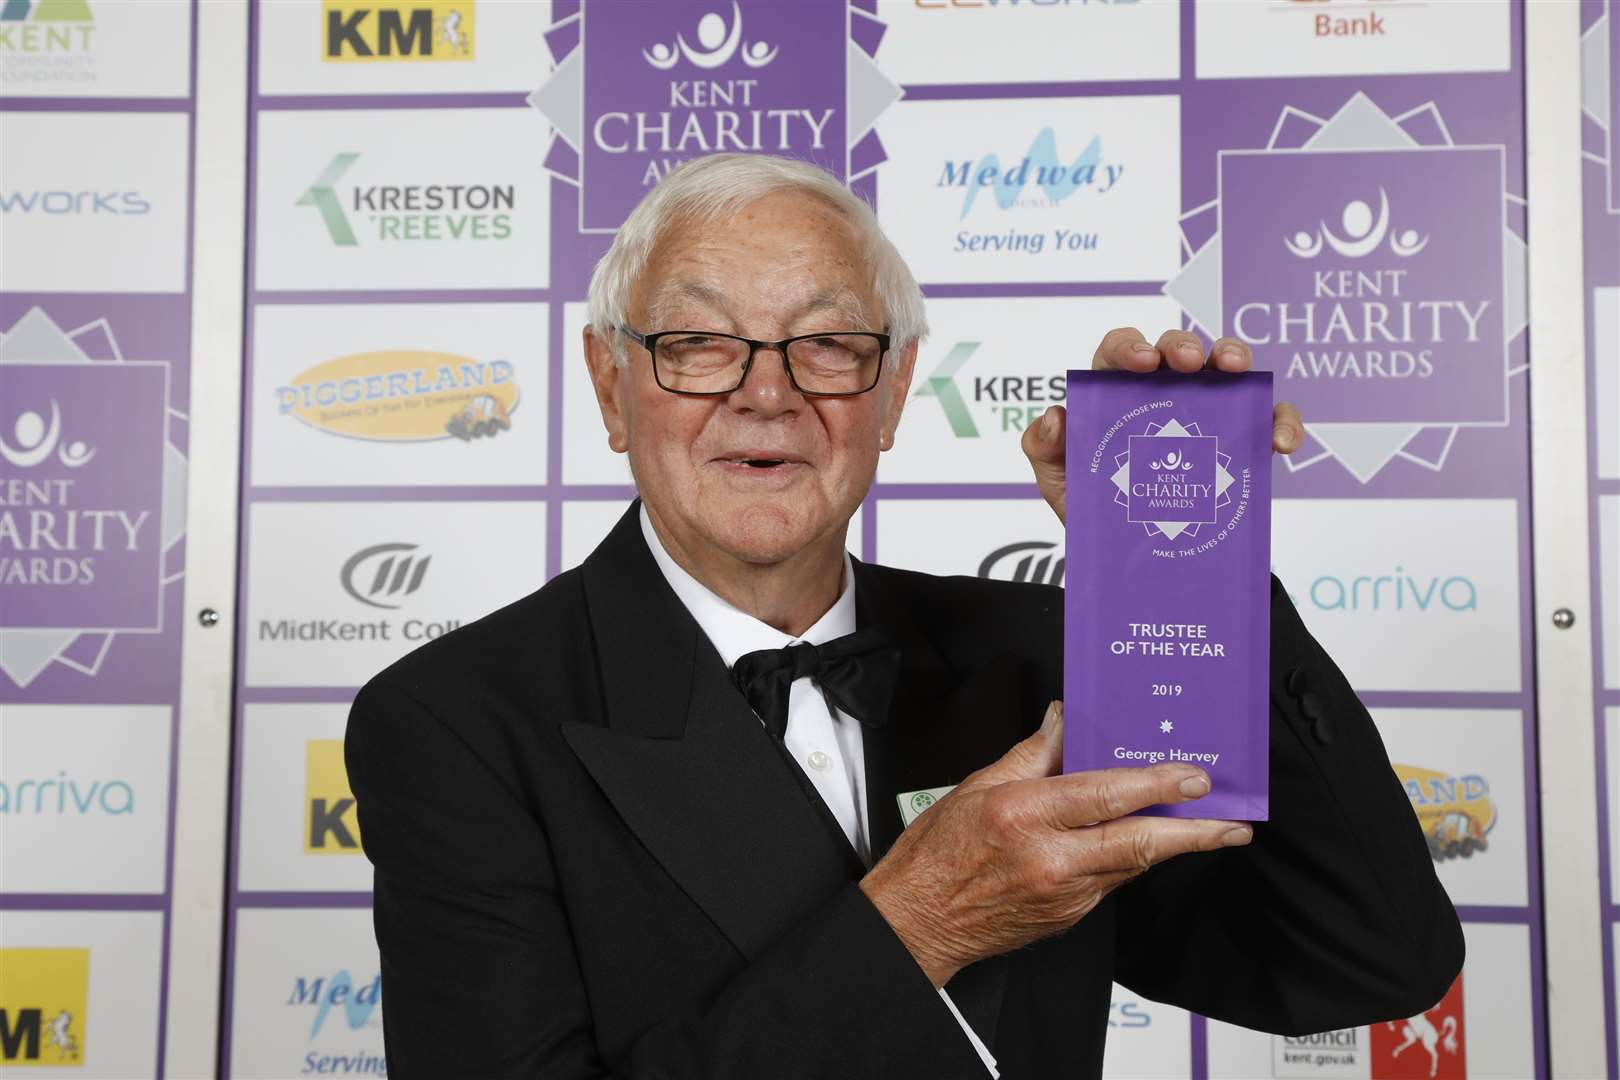 George Harvey was named Trustee of the Year for his 32-year stint at Spadework, which also won an award on the night (12341052)